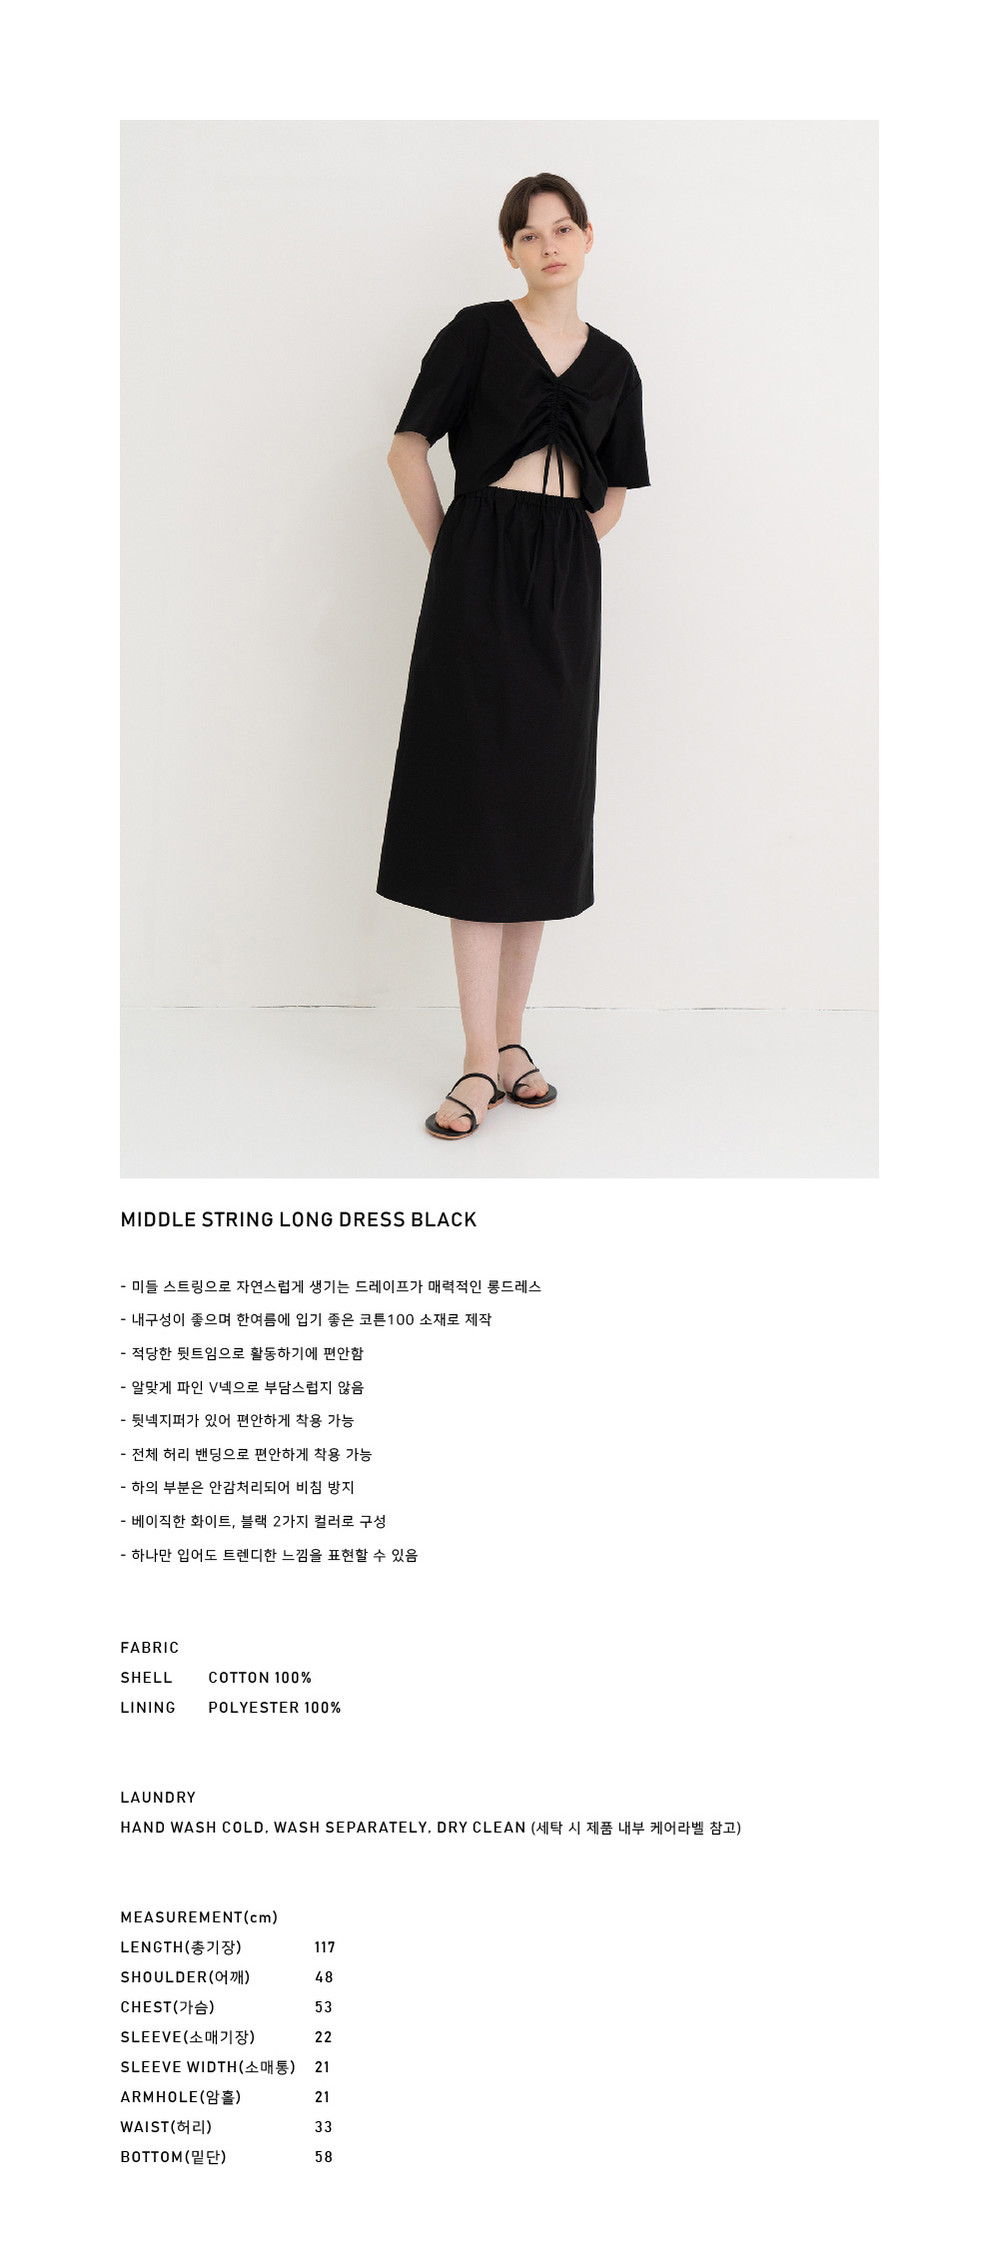 MIDDLE STRING LONG DRESS BLACK